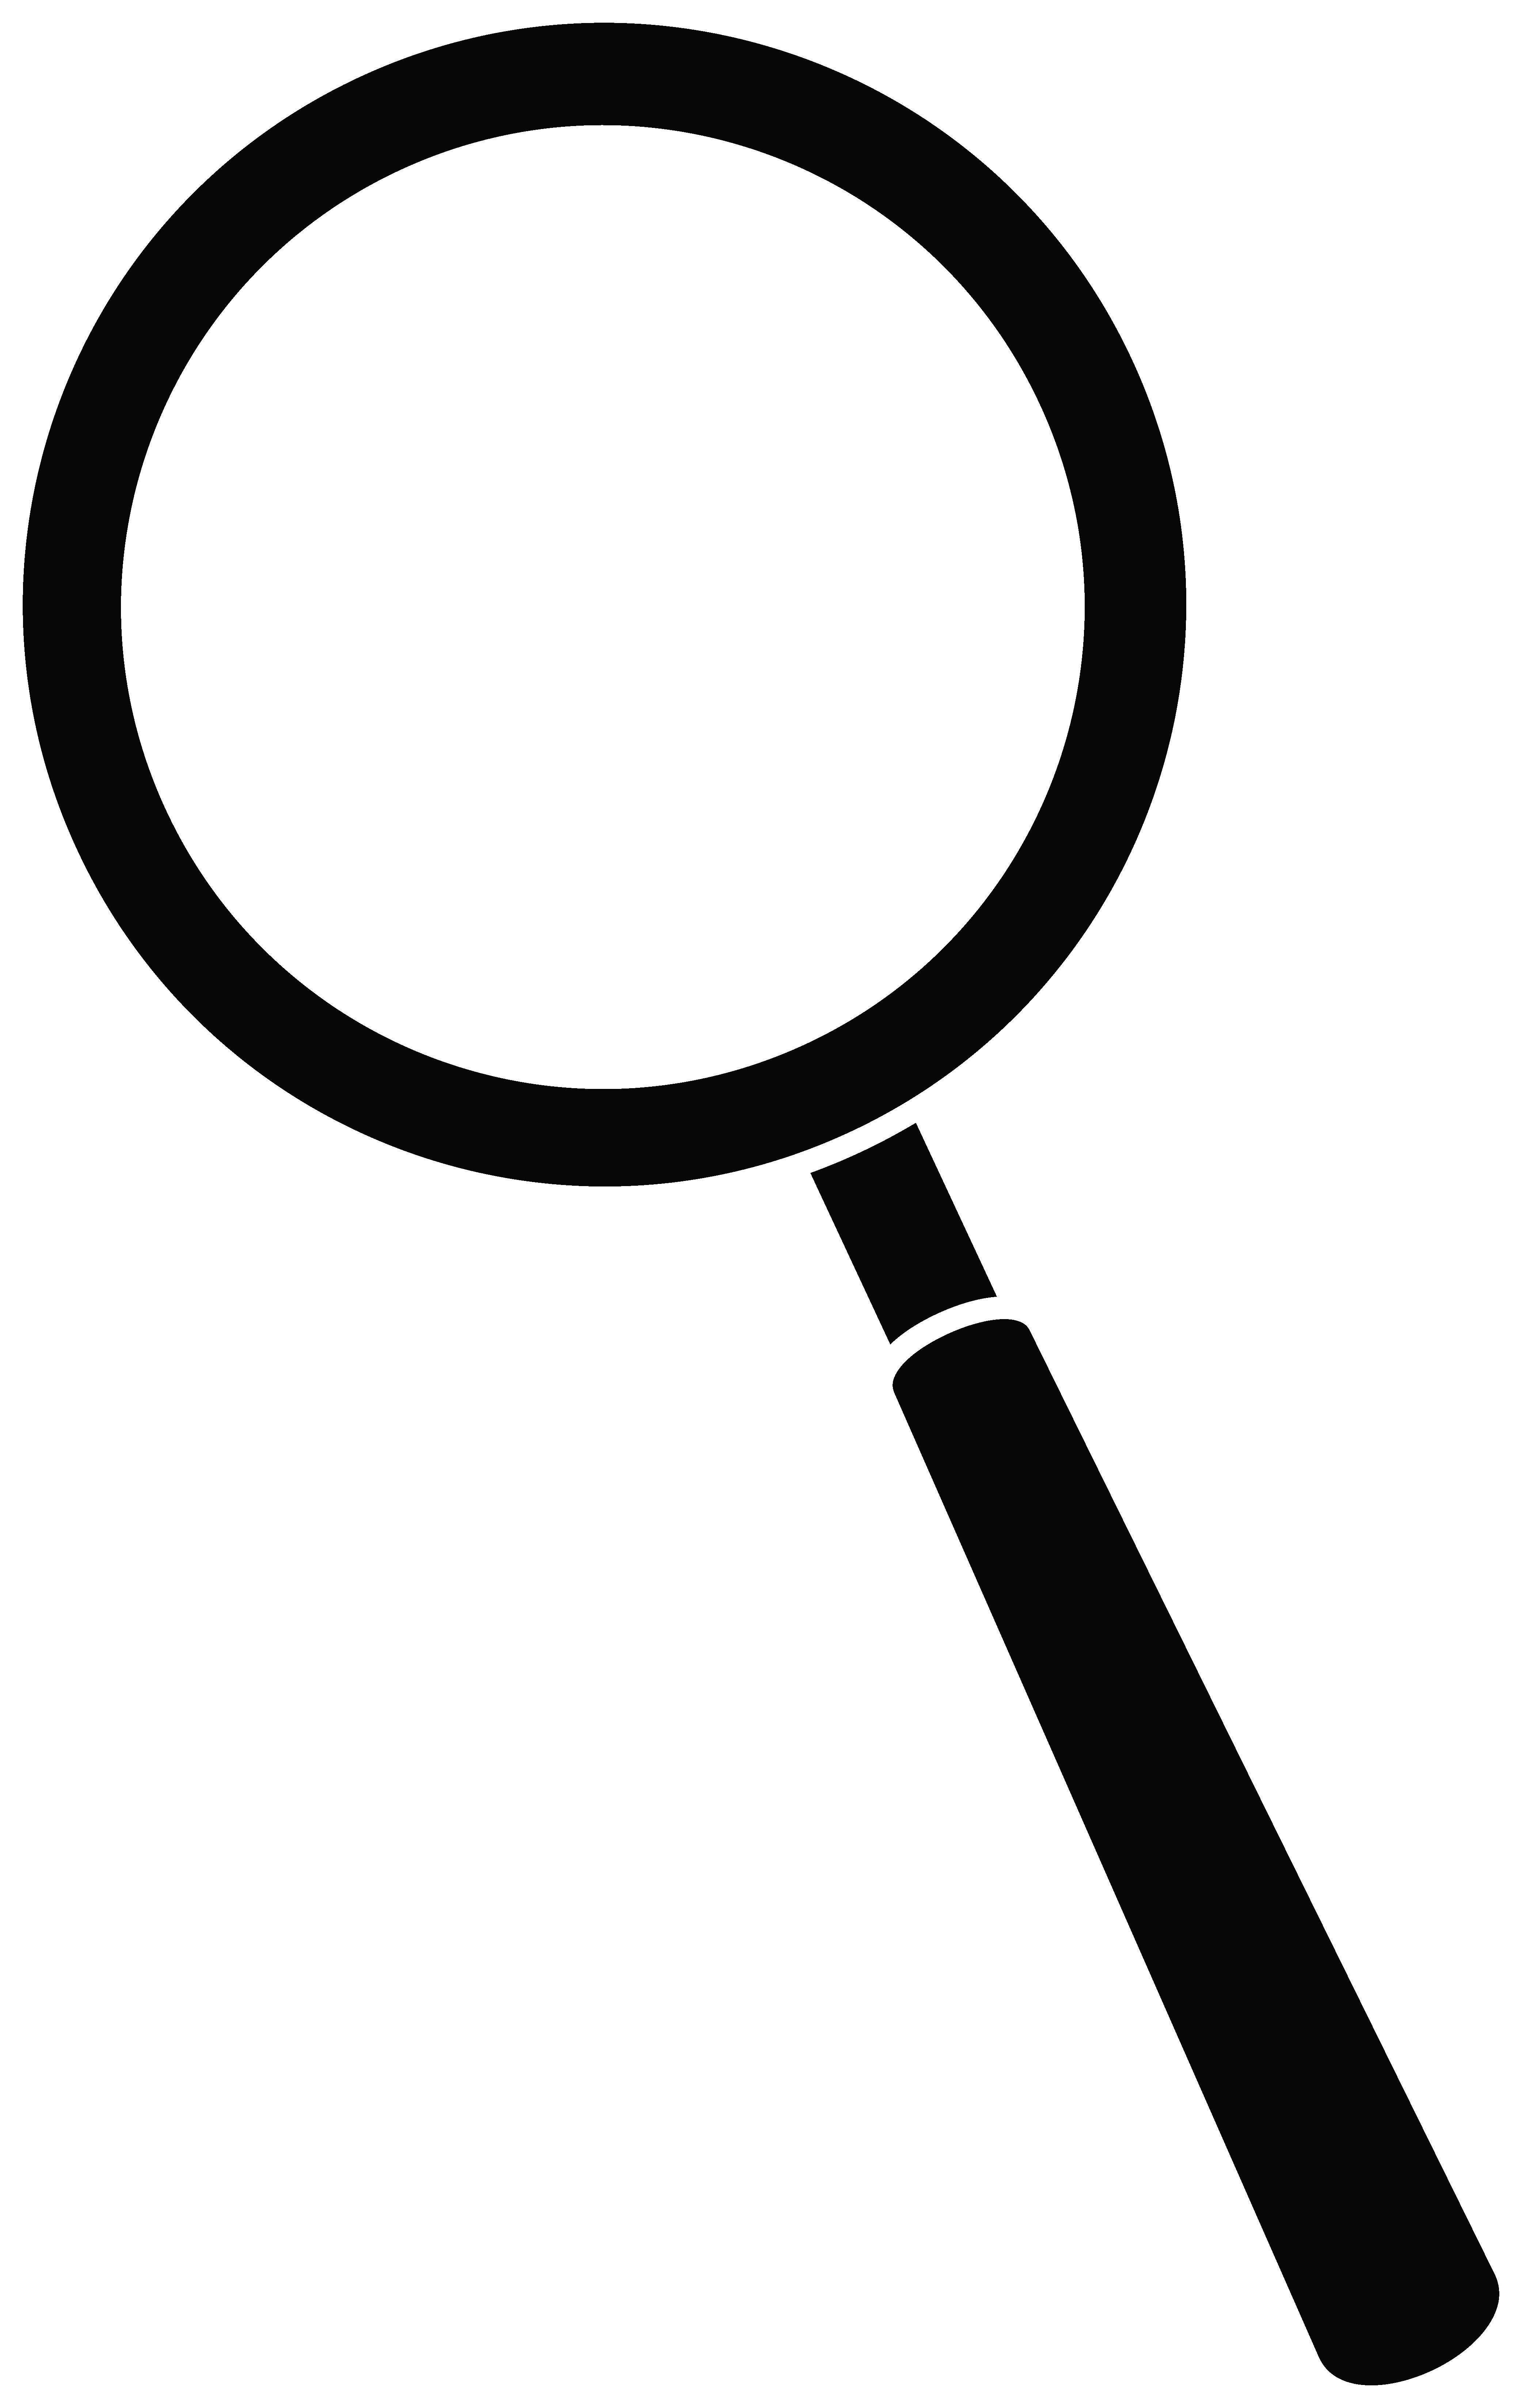 Magnifying glass clipart png